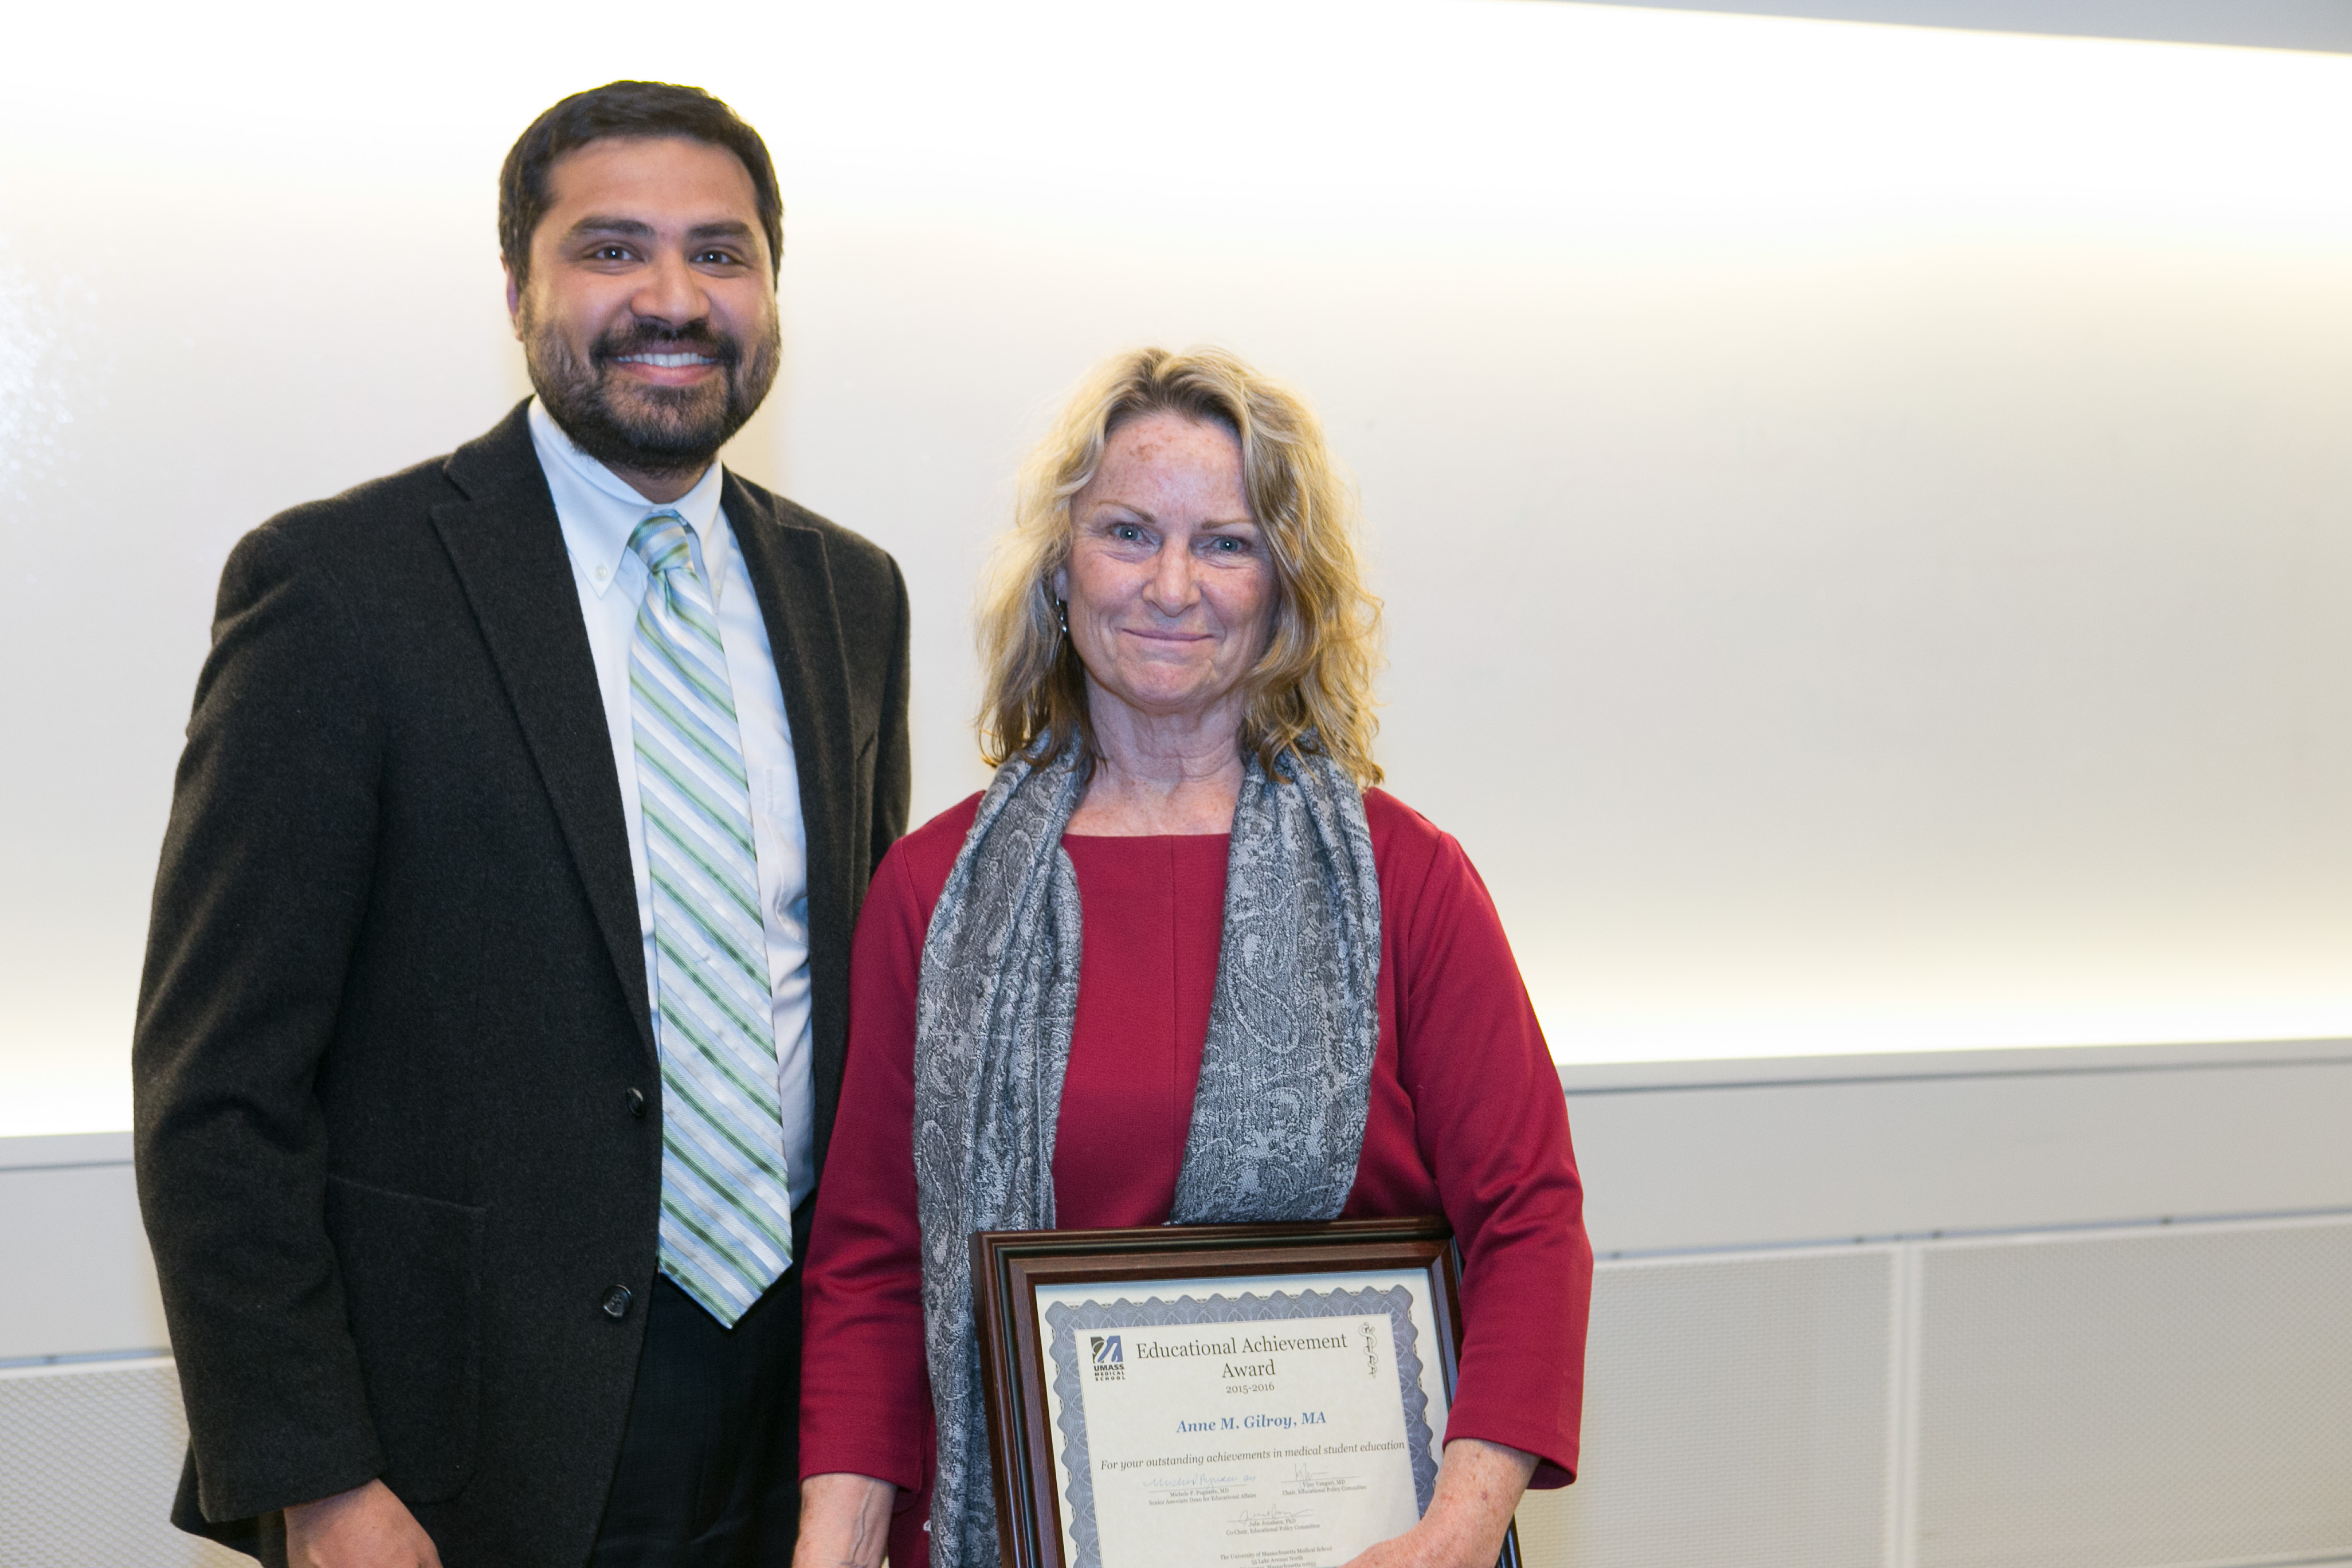 Vijay K. Vanguri, MD Chair, Educational Policy Committee presents Anne M. Gilroy, MA with the Educational Achievement (Star) Award.